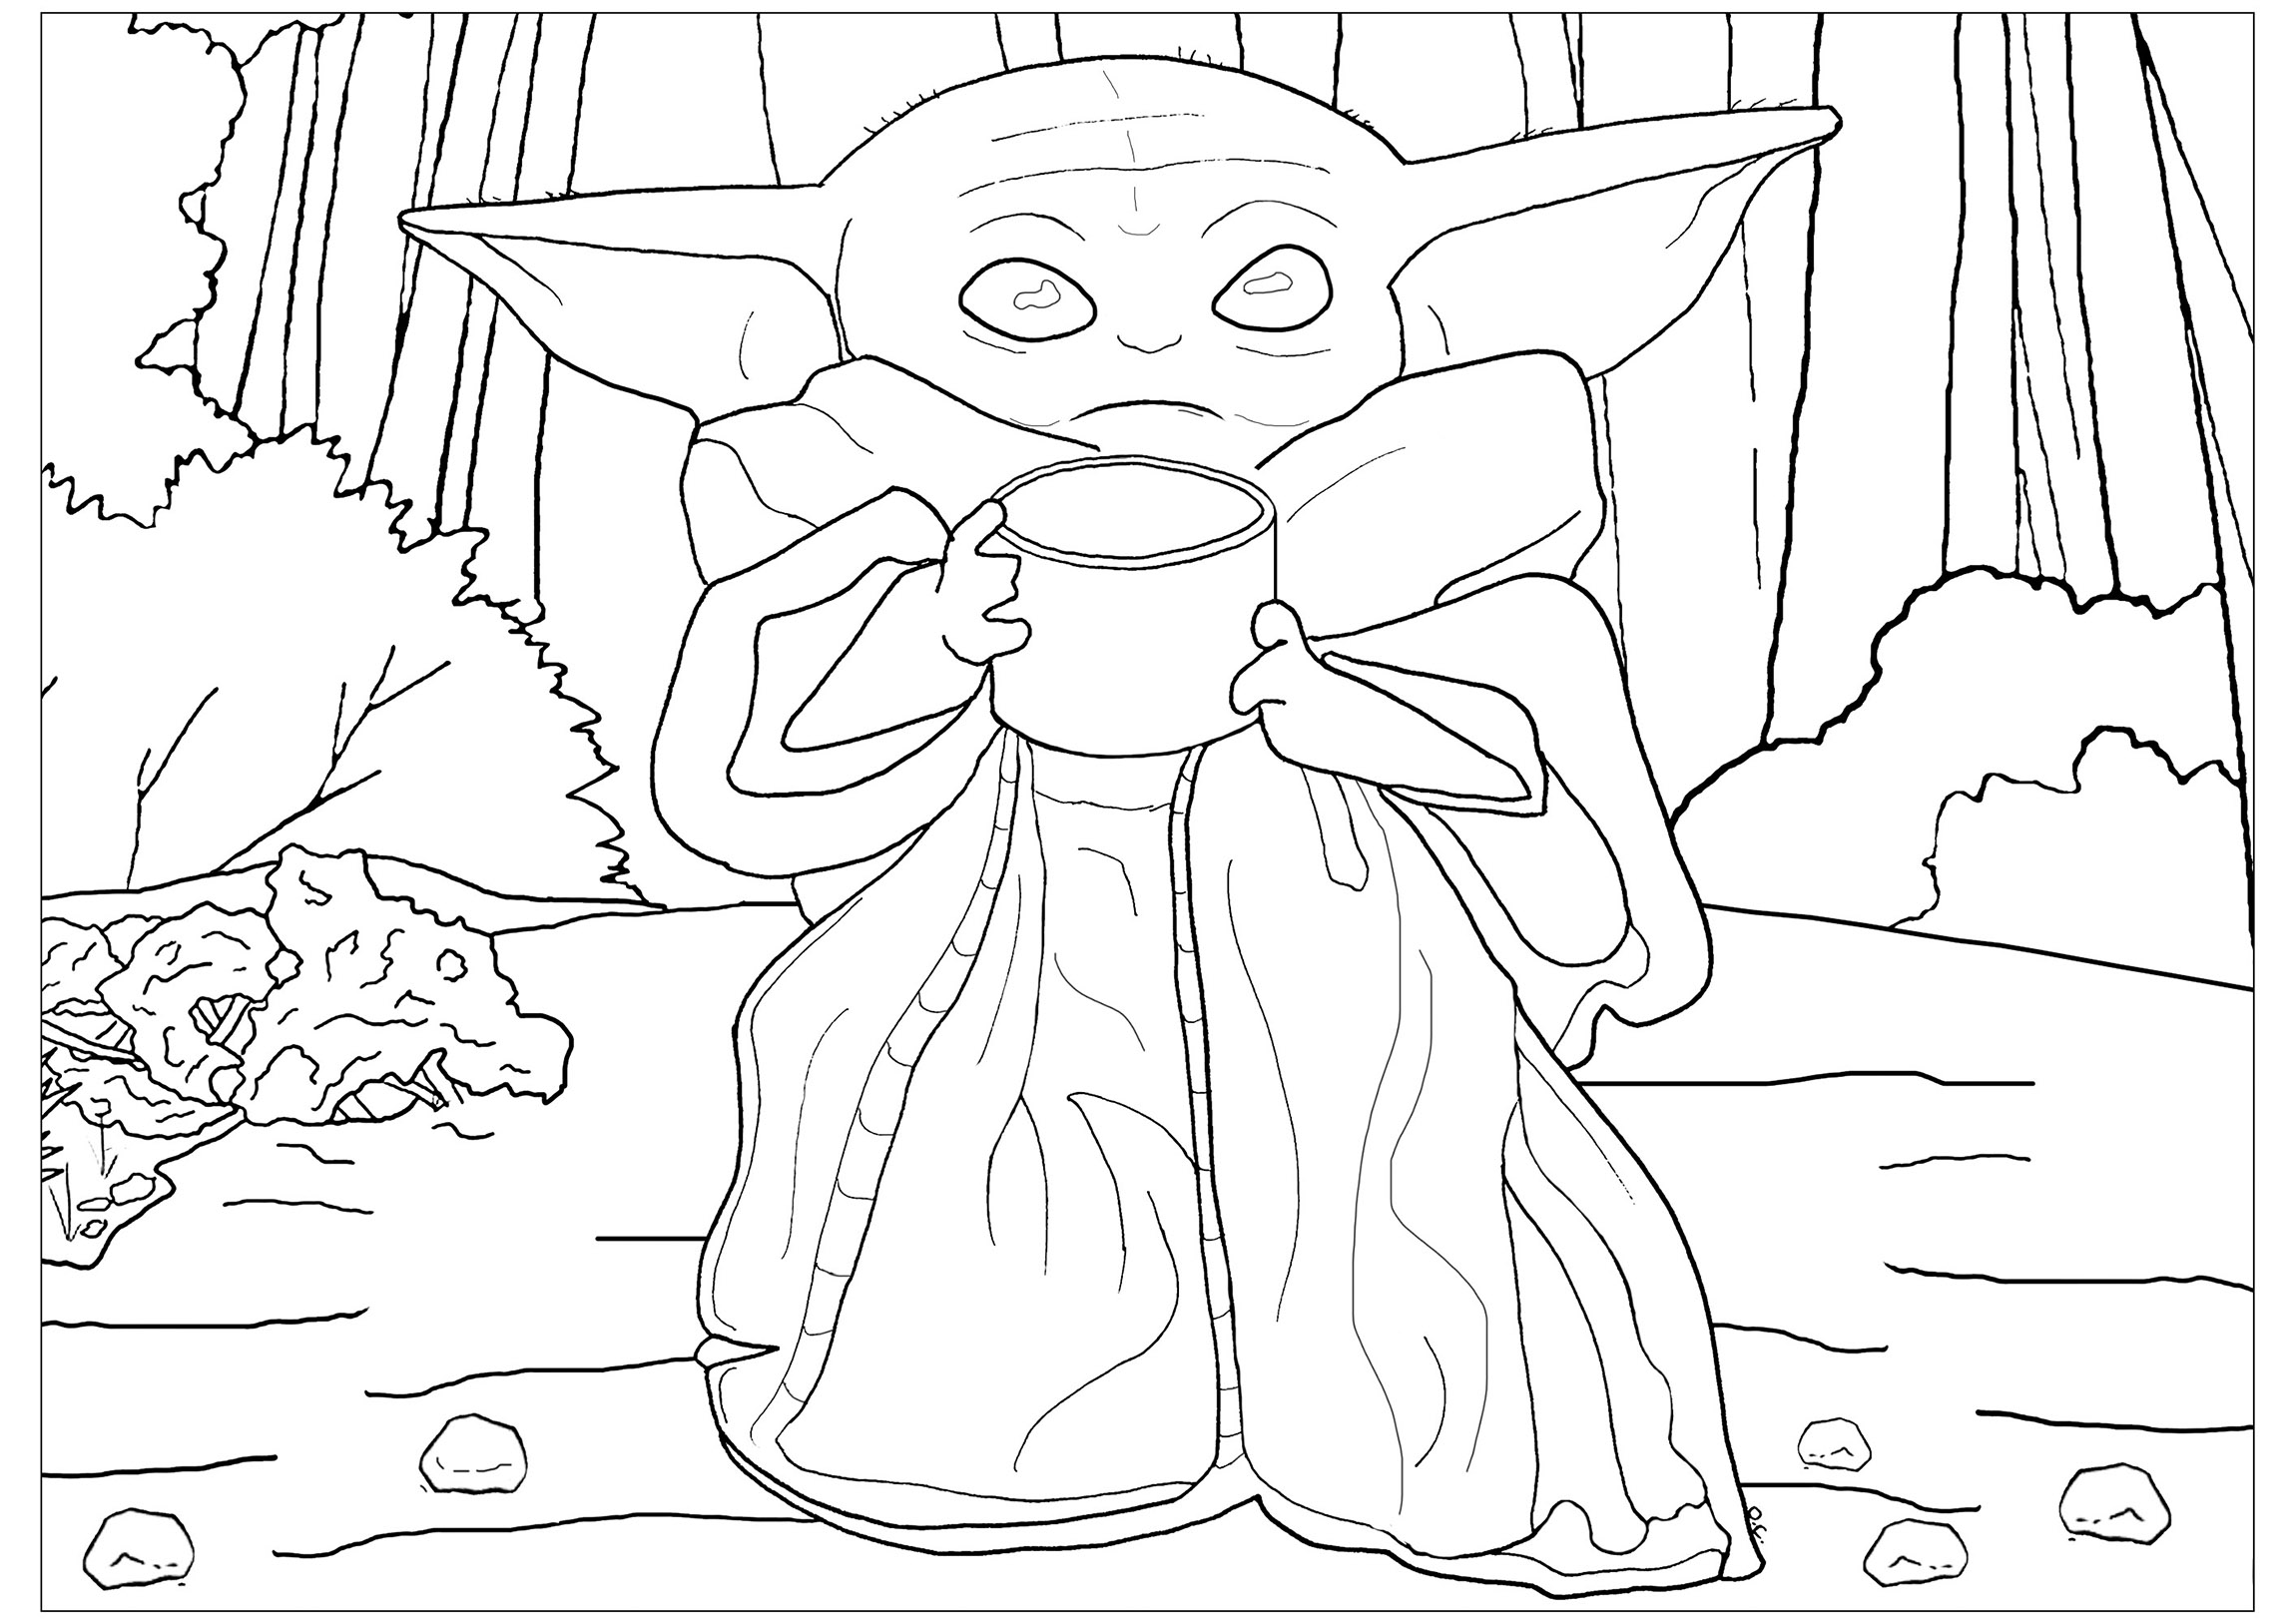 Free Star Wars coloring page to print and color, for kids